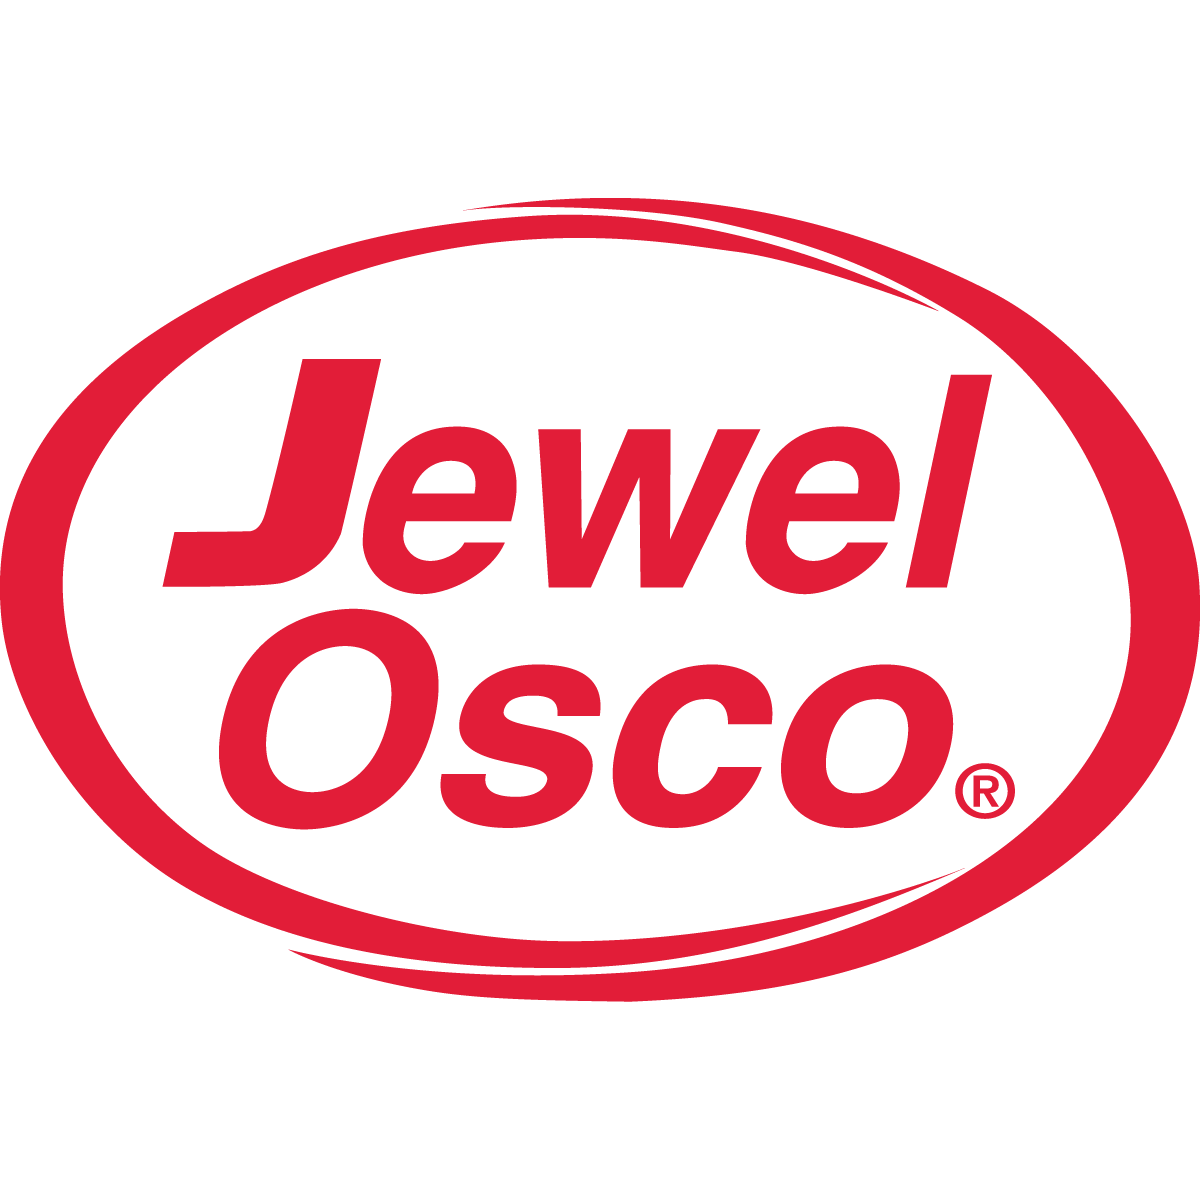 Jewel-Osco - Bensenville, IL 60106 - (630)238-0170 | ShowMeLocal.com